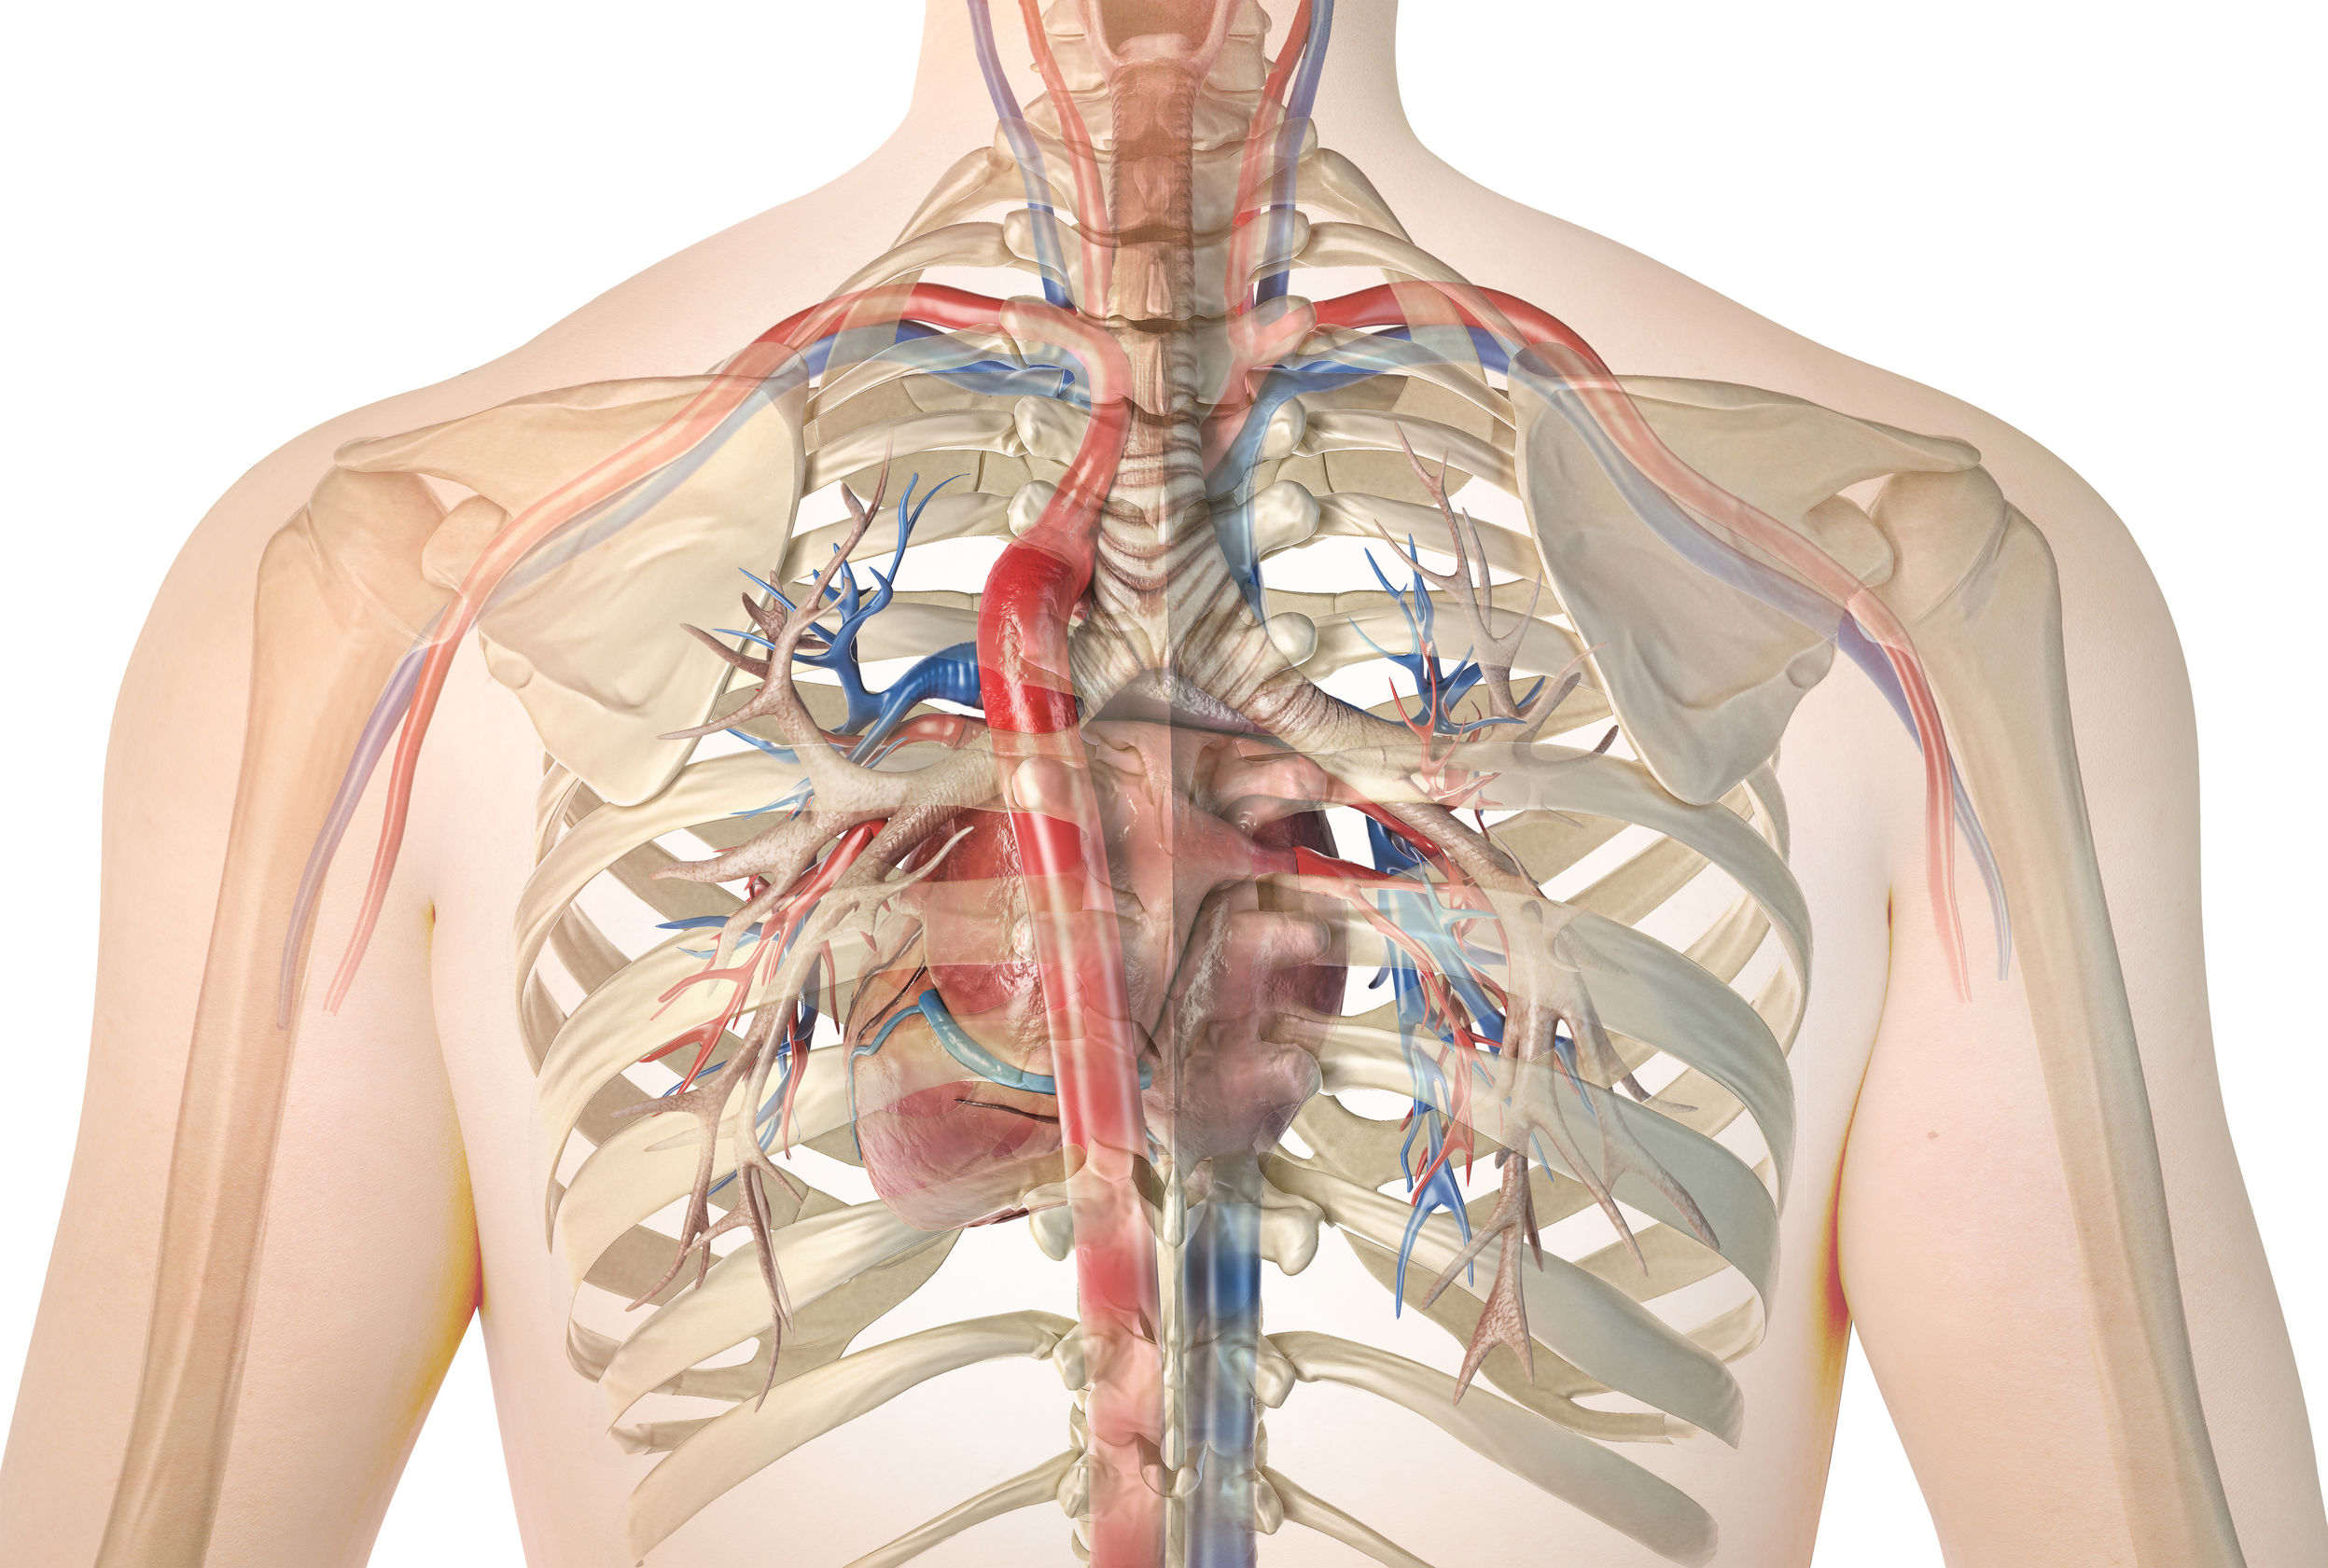 Human heart with vessels and bronchial tree, back view